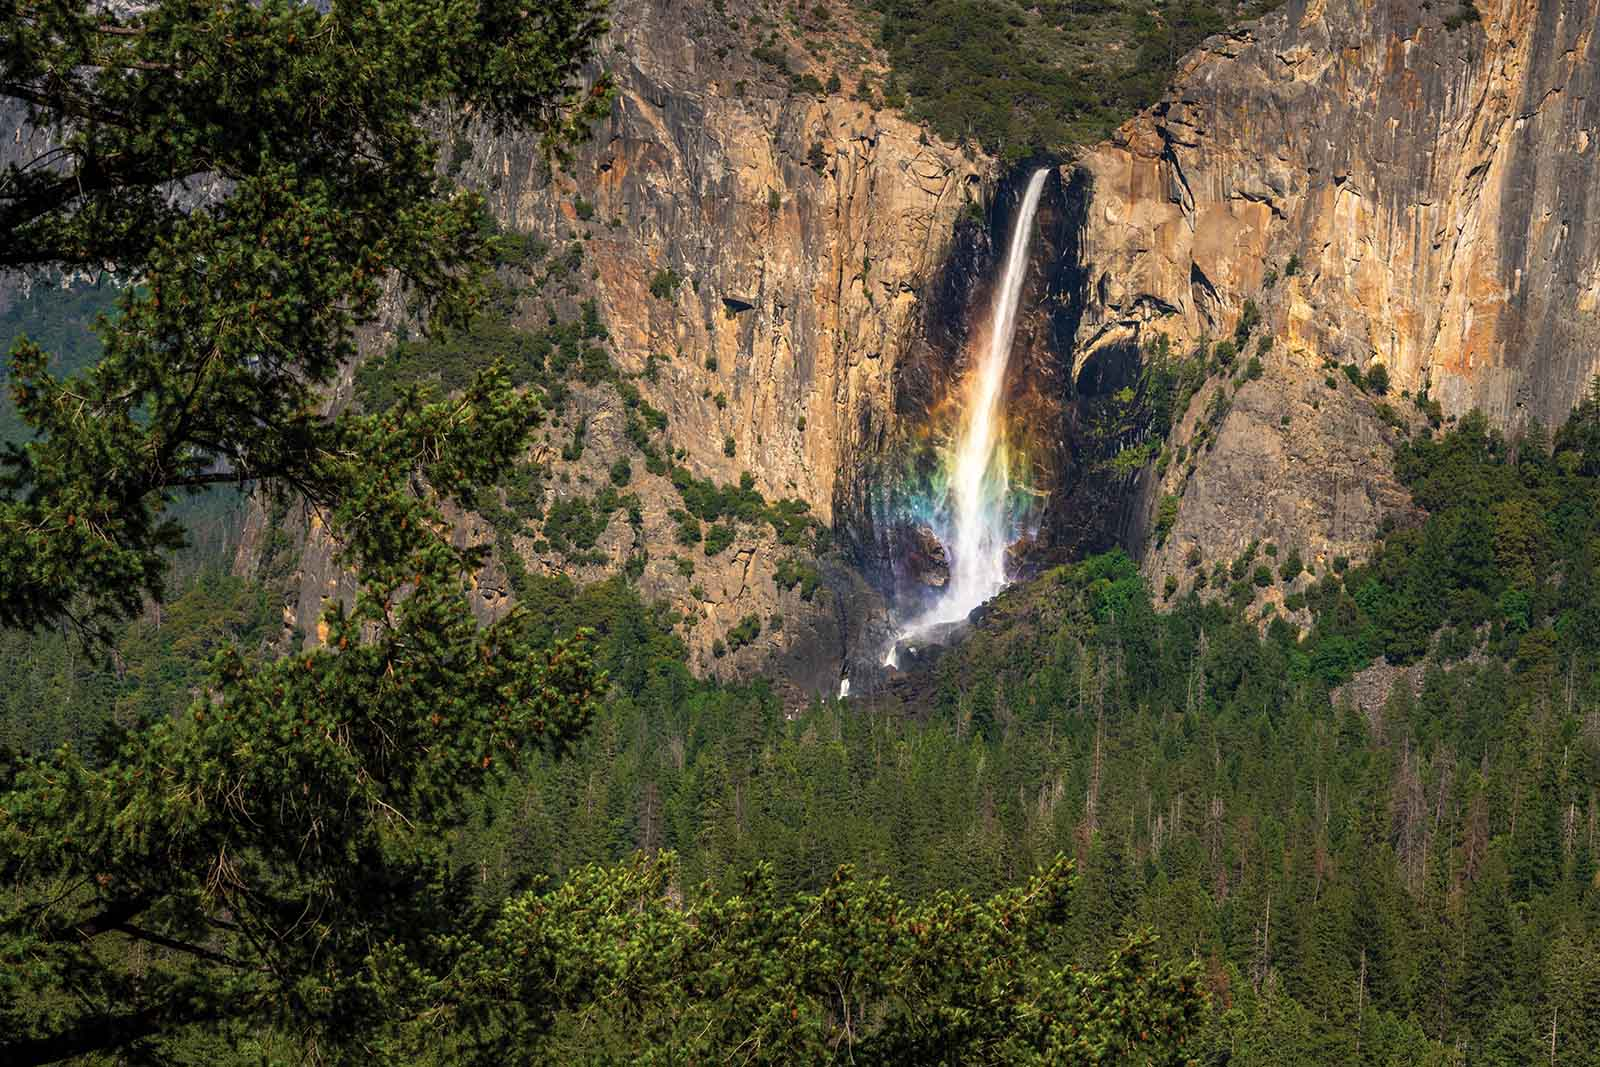 Bridalveil Rainbow captured with a Promaster tripod